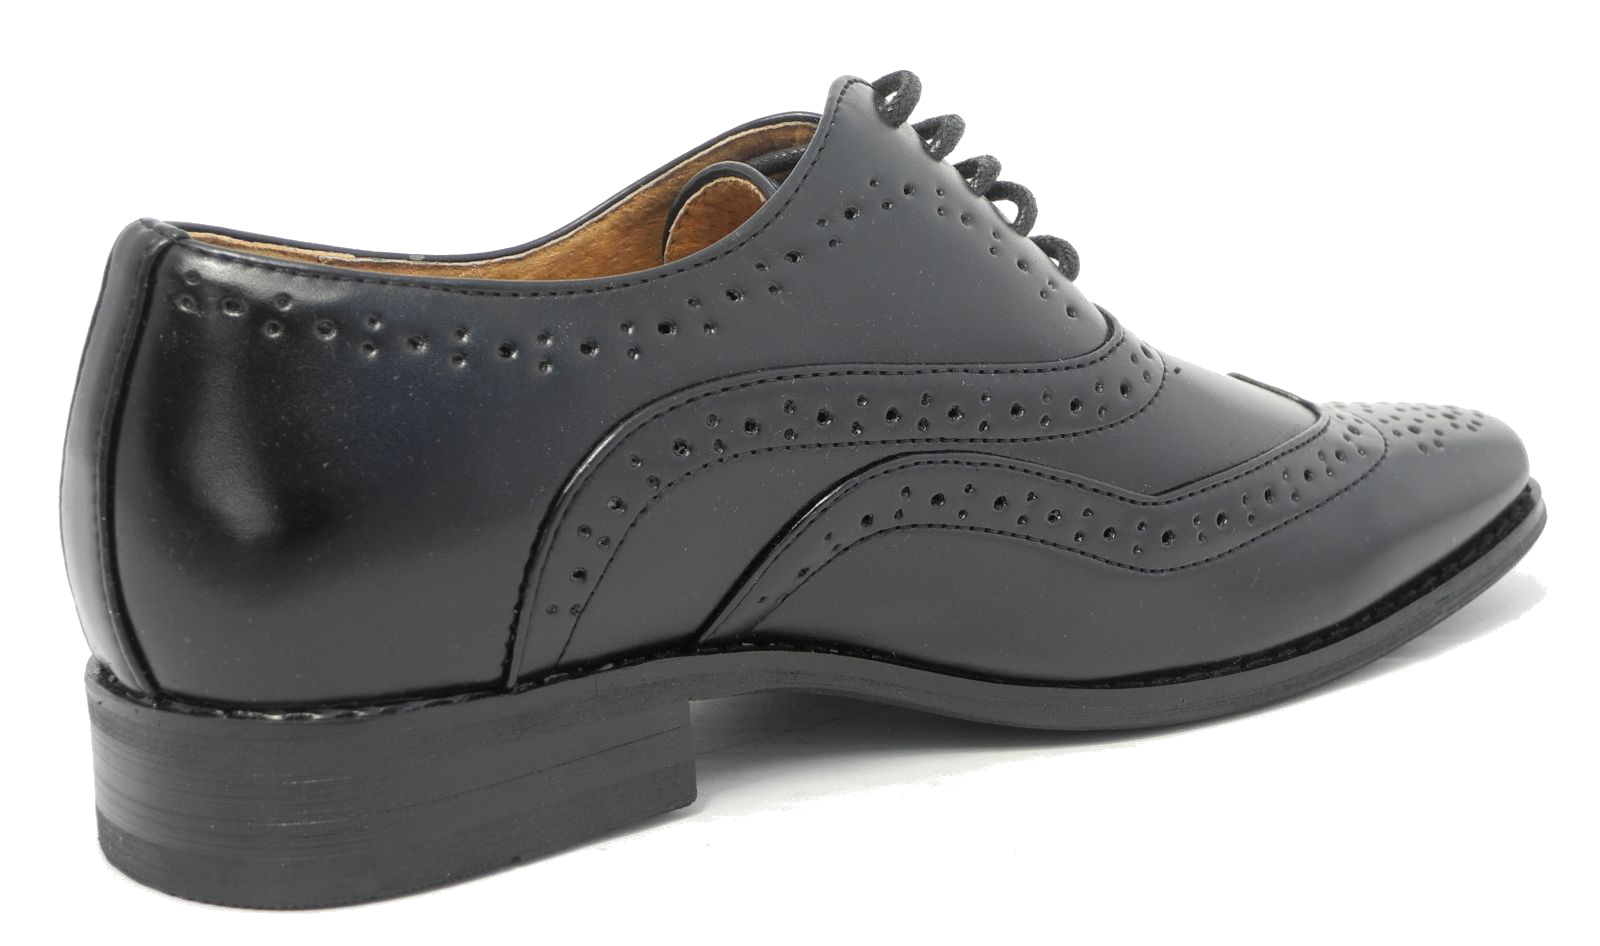 Find great deals on eBay for boys brogues. Shop with confidence.